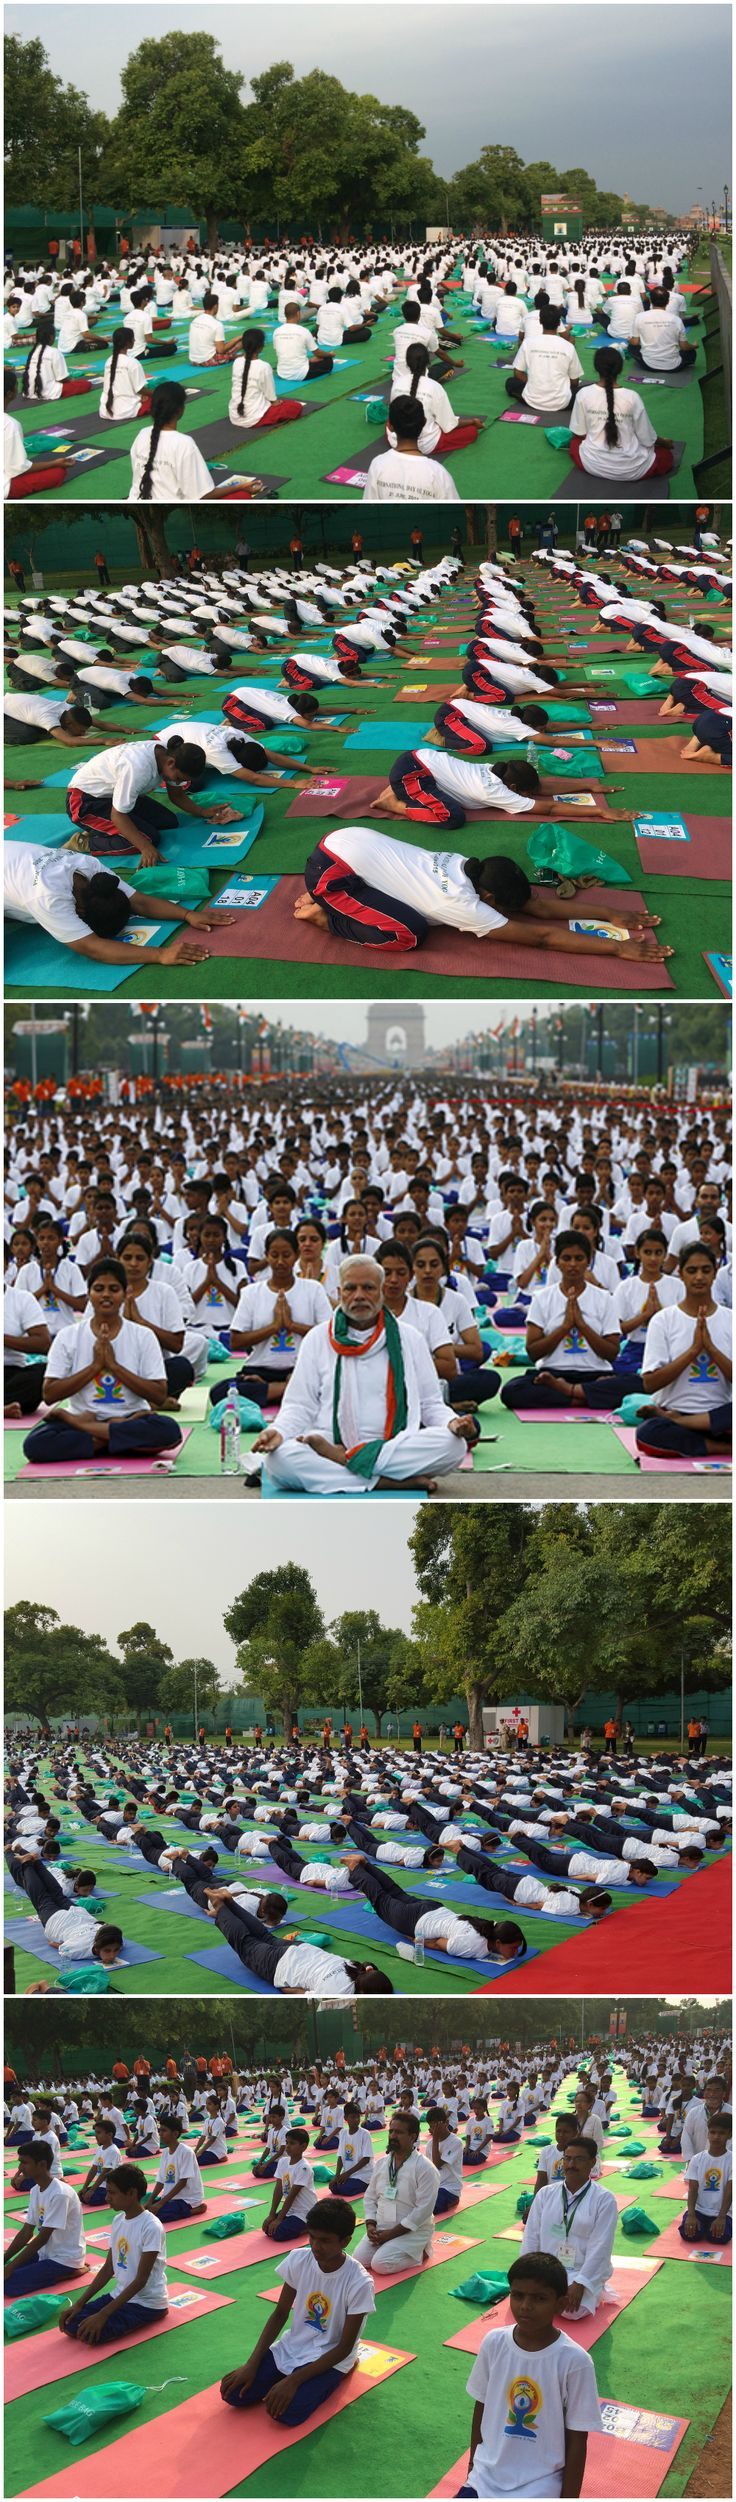 The Largest yoga lesson involved 35,985 participants at an event organised by the Ministry of AYUSH, Government of #India (India) on the occasion of the first International Day of #Yoga. The event had 5,000 school children, 5,000 national cadet corps, 5,000 central army forces, 1,200 women police officers, 5,000 union ministers and similar, 500 diplomats and foreign nationals, 15,000 from yoga institutions!    #yogainstructor #athletics #zen #peace #world #pilates #fit #fitness #relaxation